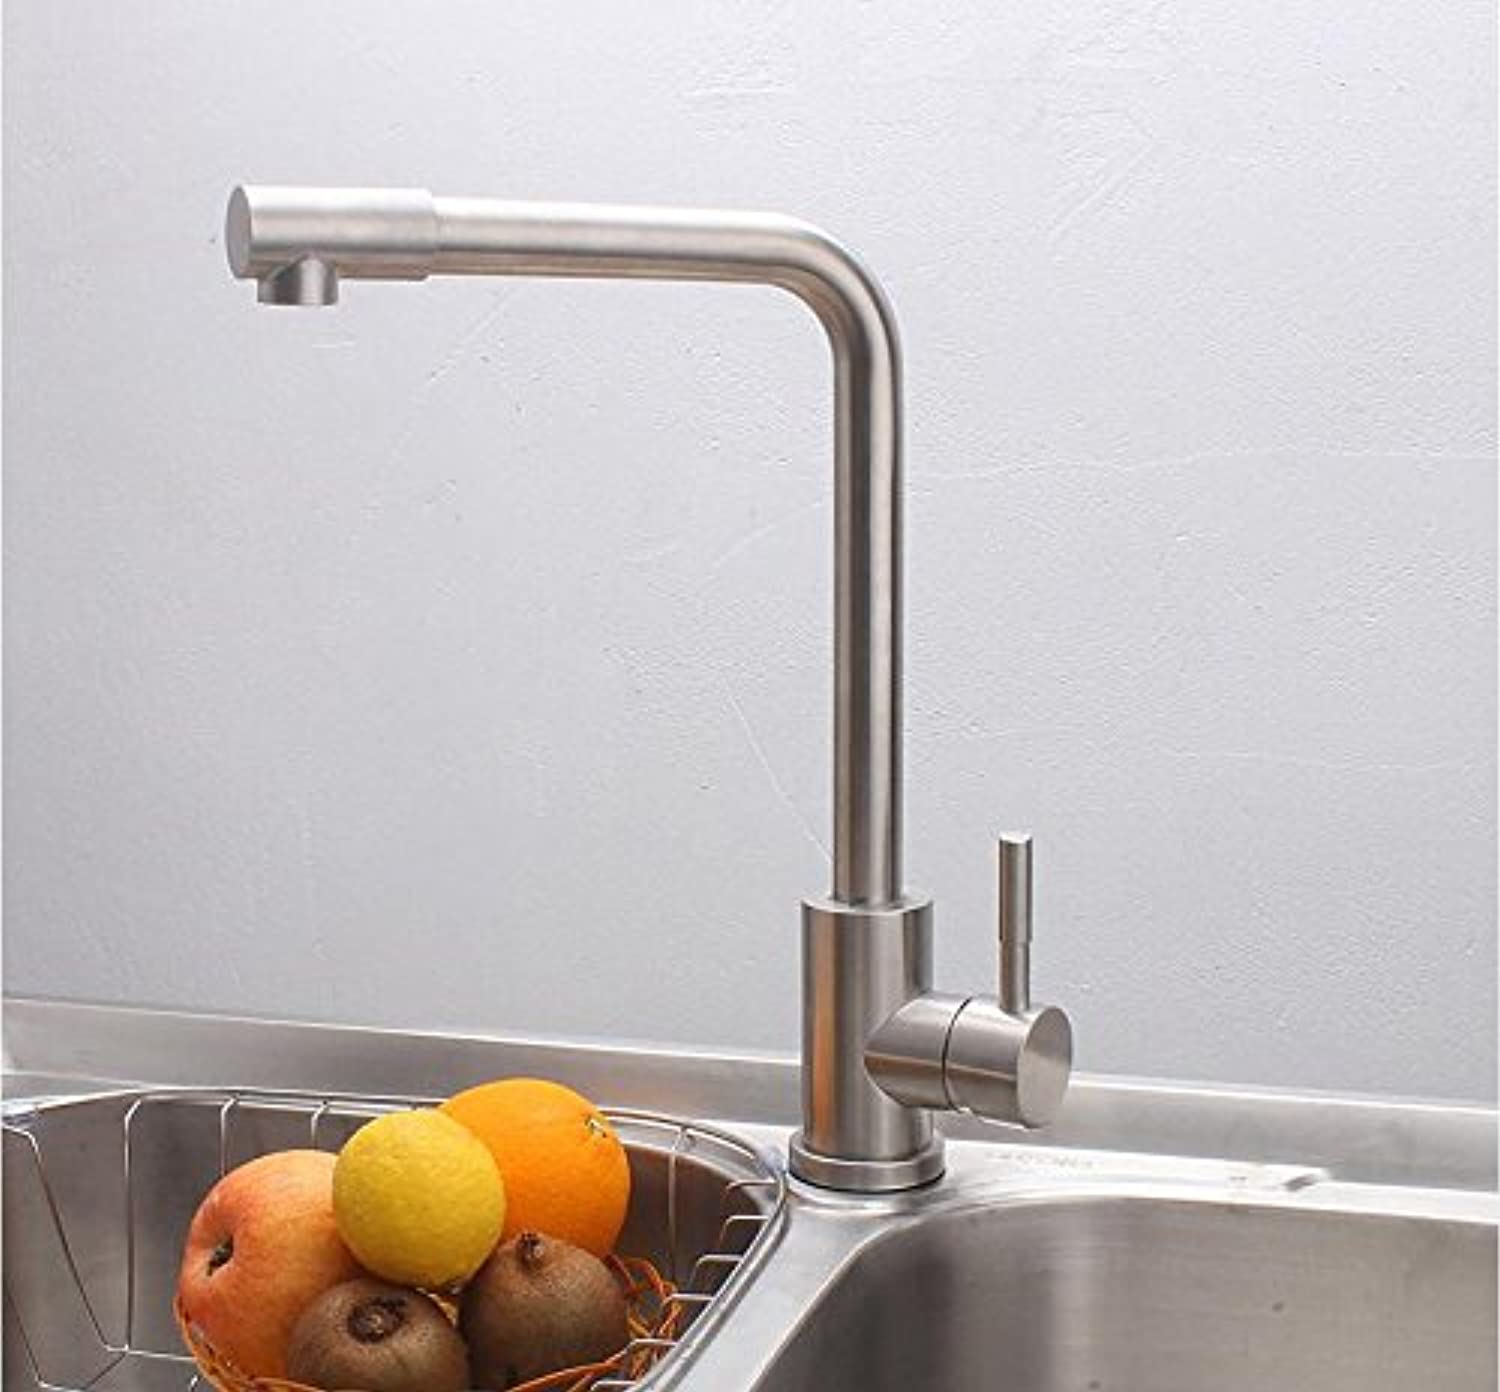 Ytdzsw 304 Stainless Steel Wash Basin Kitchen Hot And Cold Water Mixing Valve Plumbing Bath Faucet.